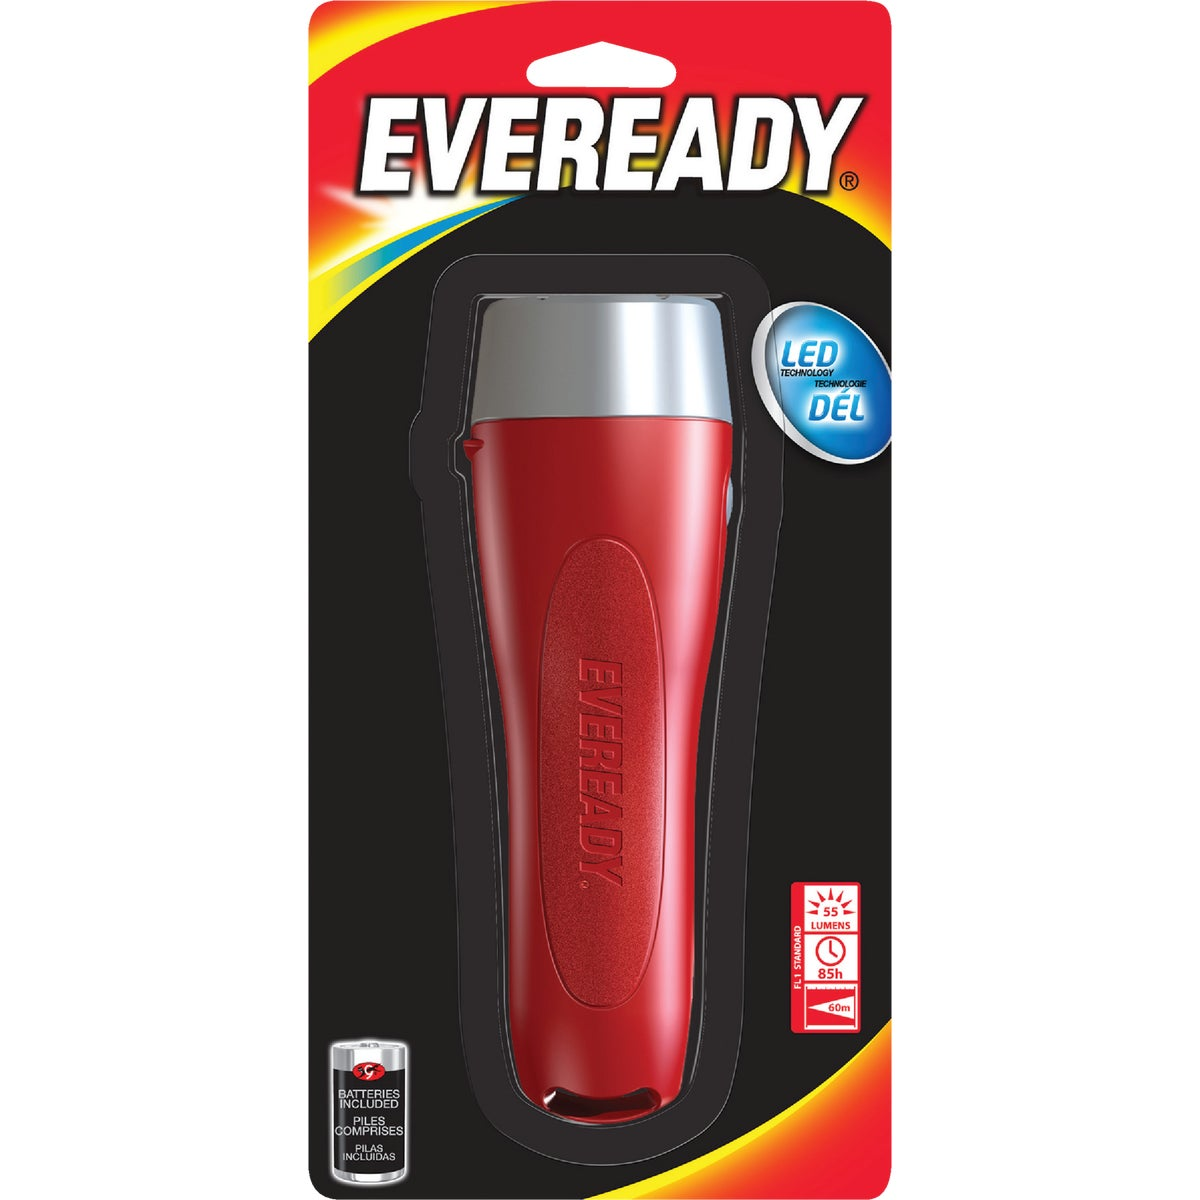 2D 3LED FLASHLIGHT - EVVL25S by Energizer